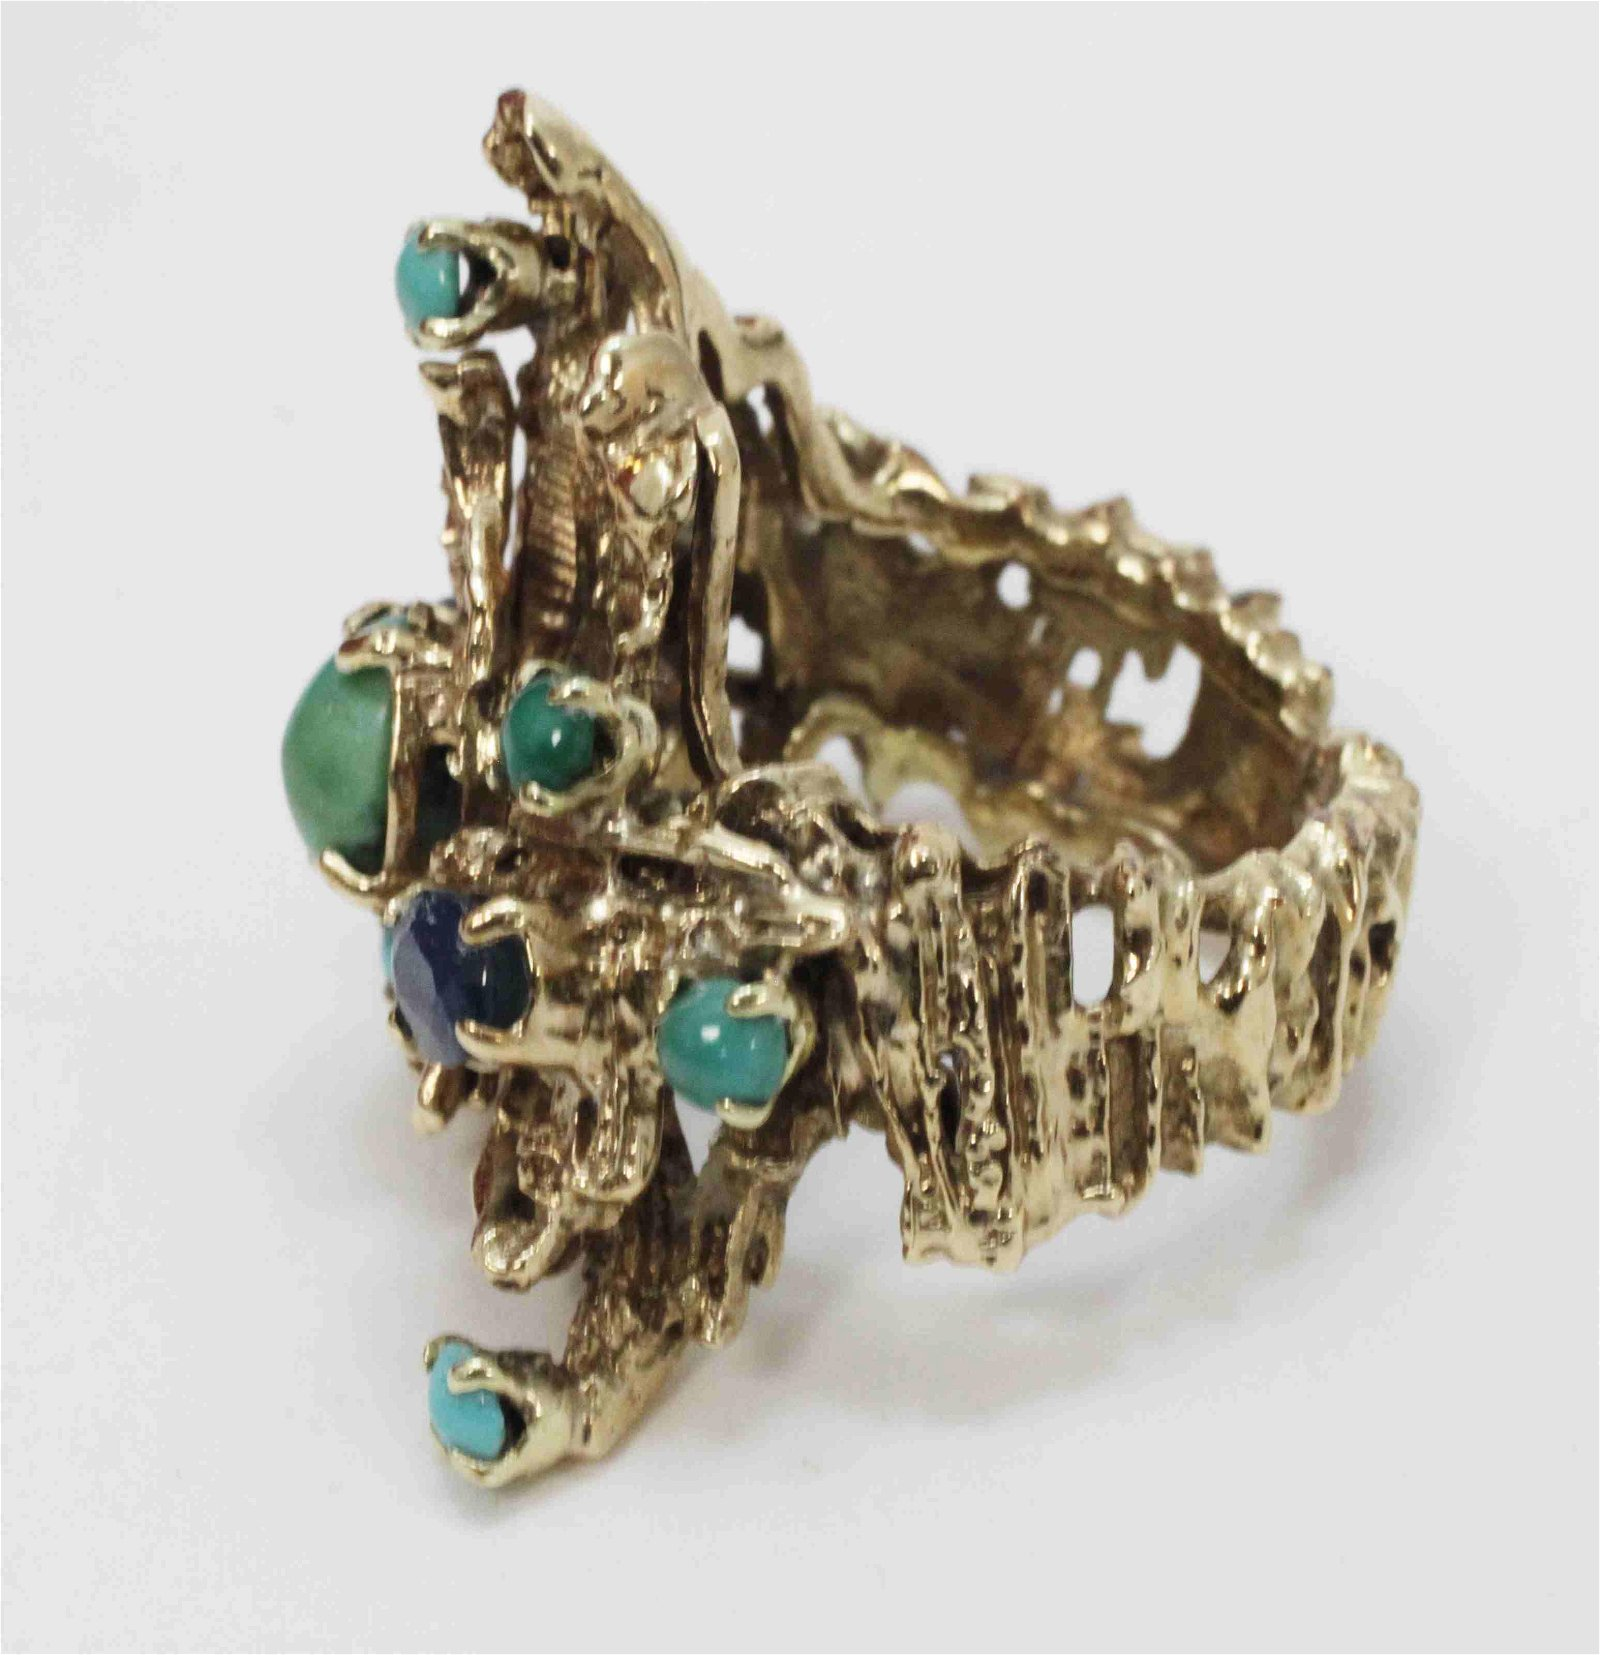 70's Brutalist 14k Gold Turquoise & Sapphire Ring